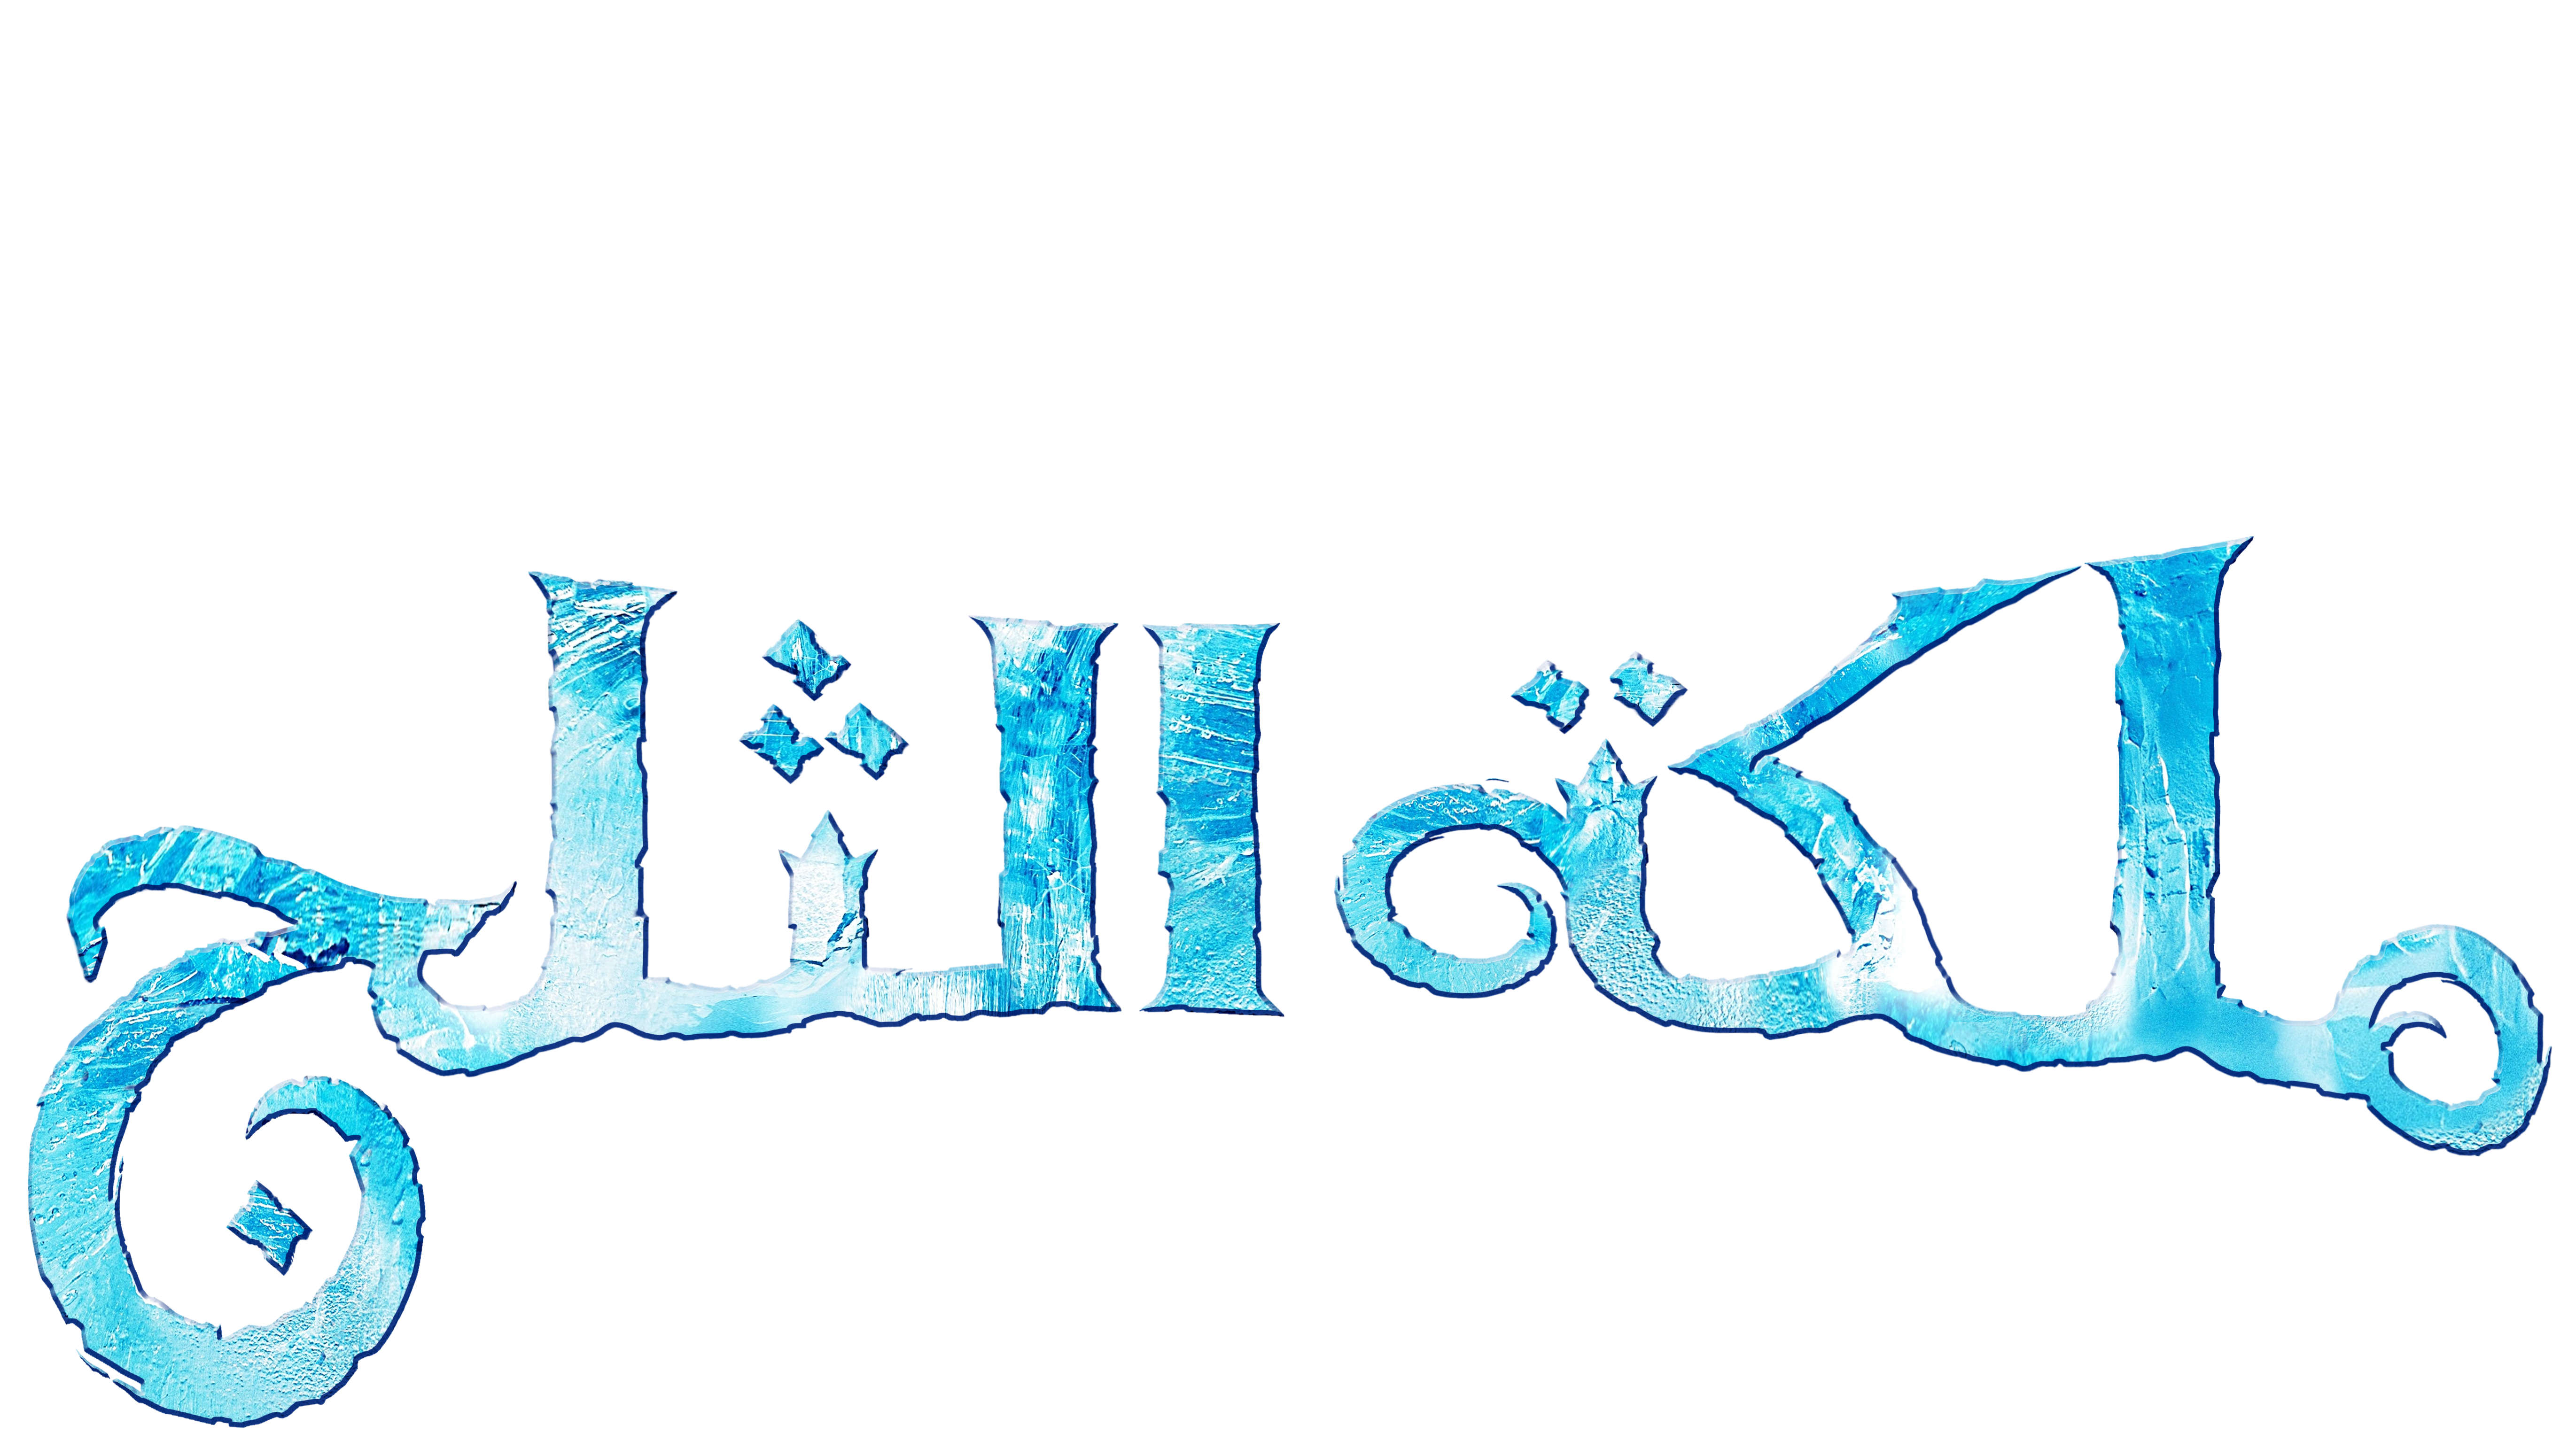 Frozen images frozen arabic logo HD wallpaper and background photos ...